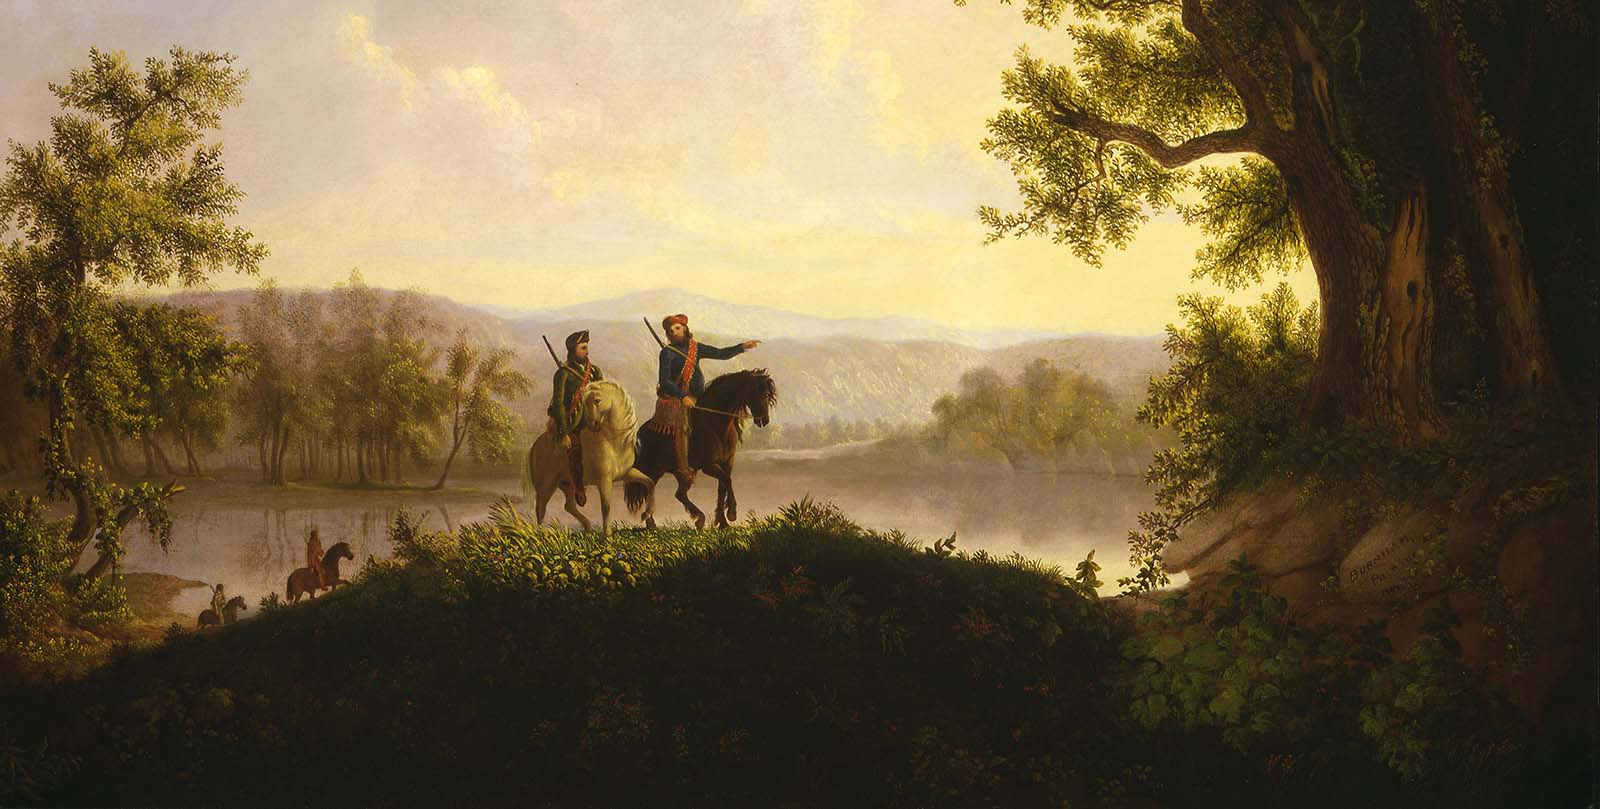 """Thomas Mickell Burnham (1818-1866). """"The Lewis and Clark Expedition,"""" ca. 1850. Oil on canvas, 36.125 x 48.5 inches. Museum purchase. 21.78 (detail)"""